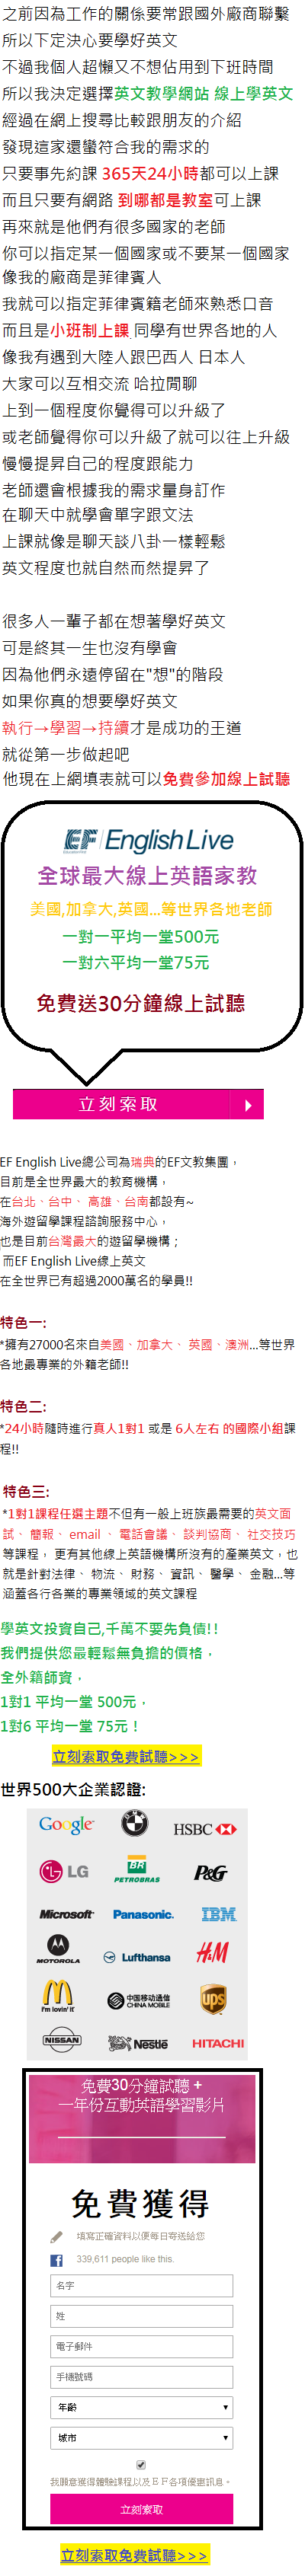 EF english-1.png